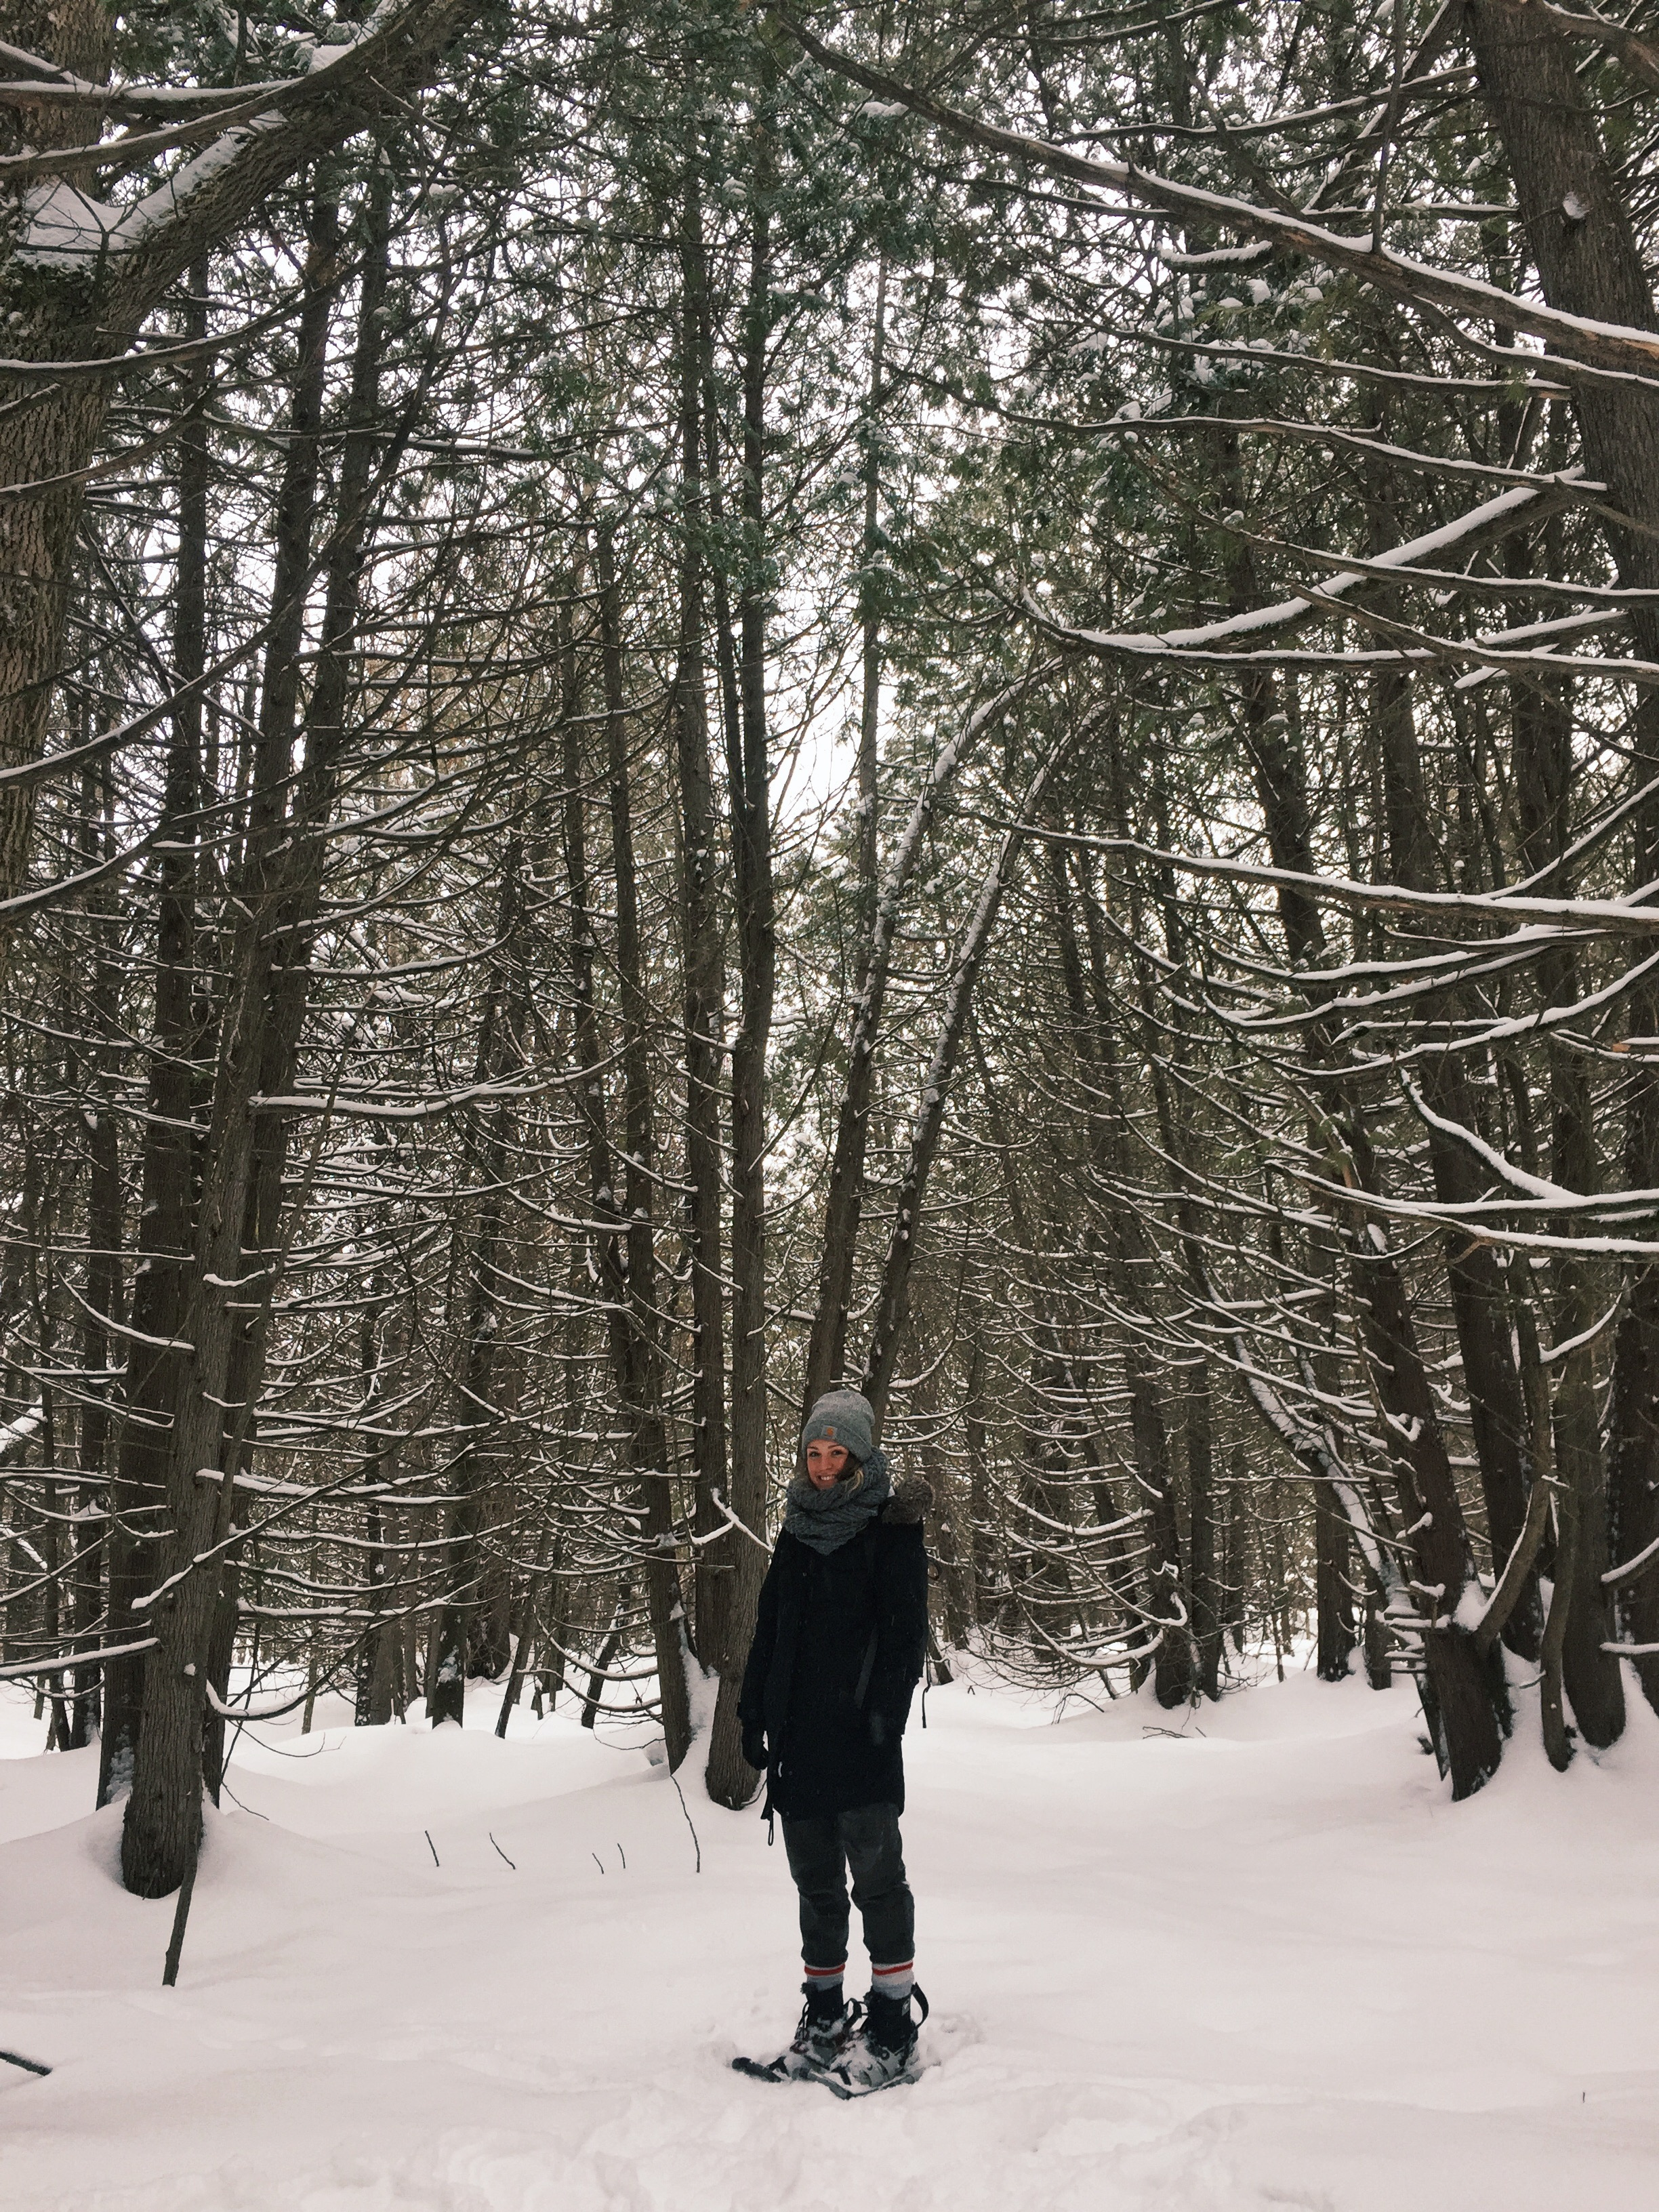 Snowshoeing and   dogsleddin g in Moonstone, Ontario.